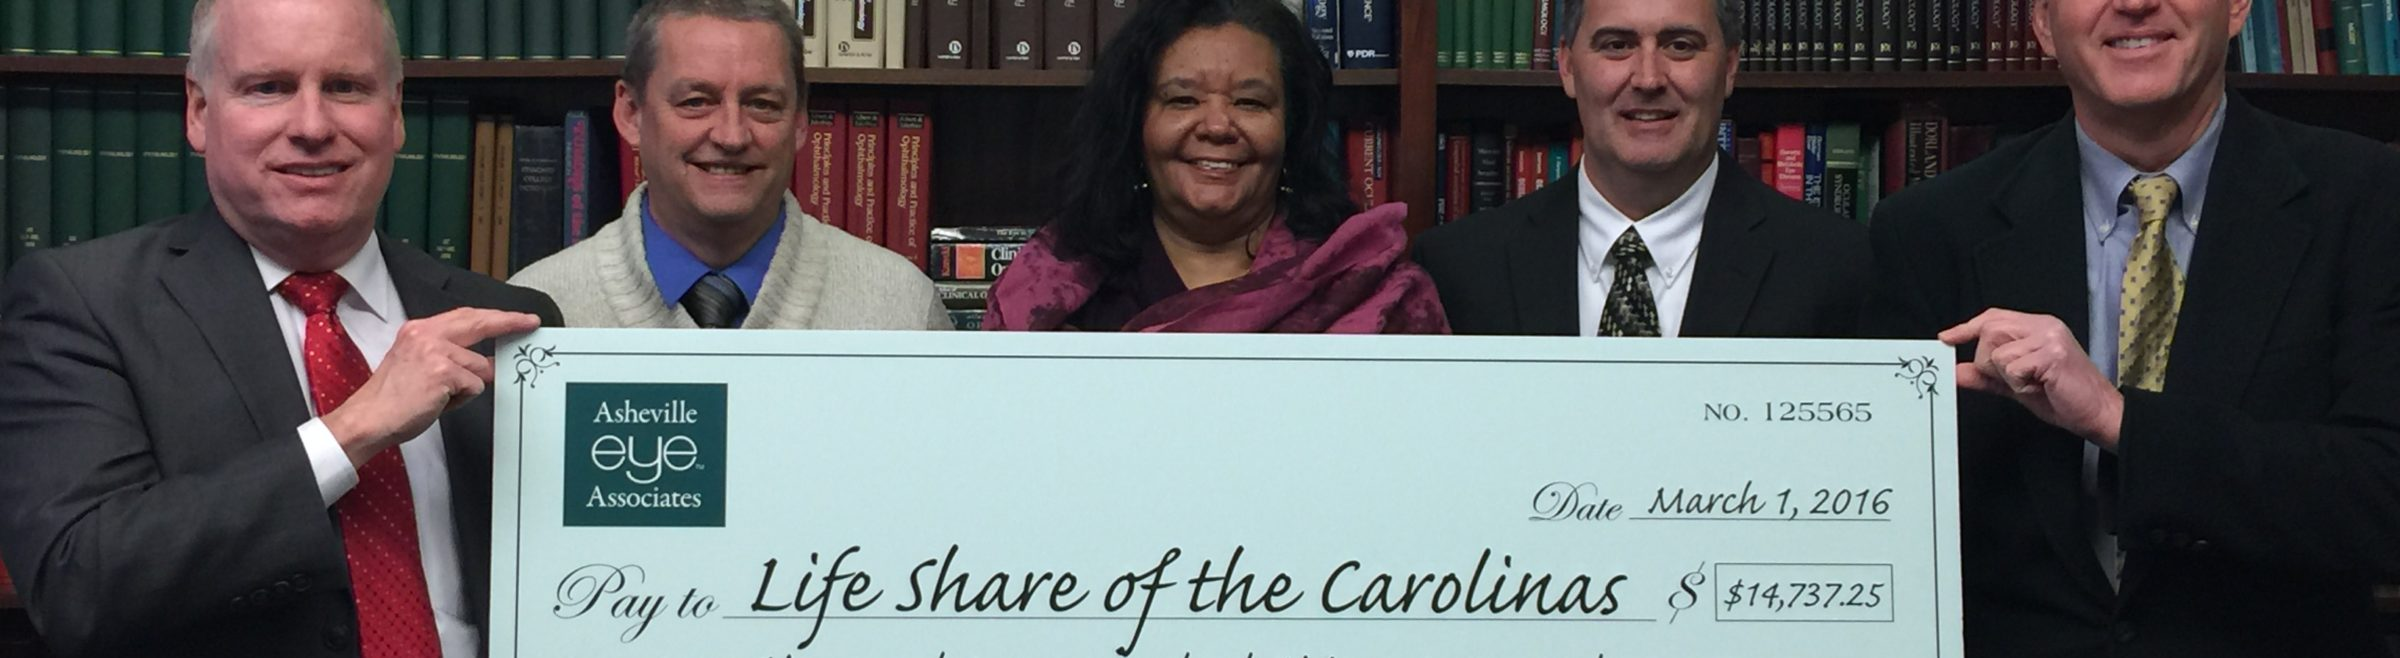 Asheville Eye Associates Presents nearly $15K to LifeShare of the Carolinas